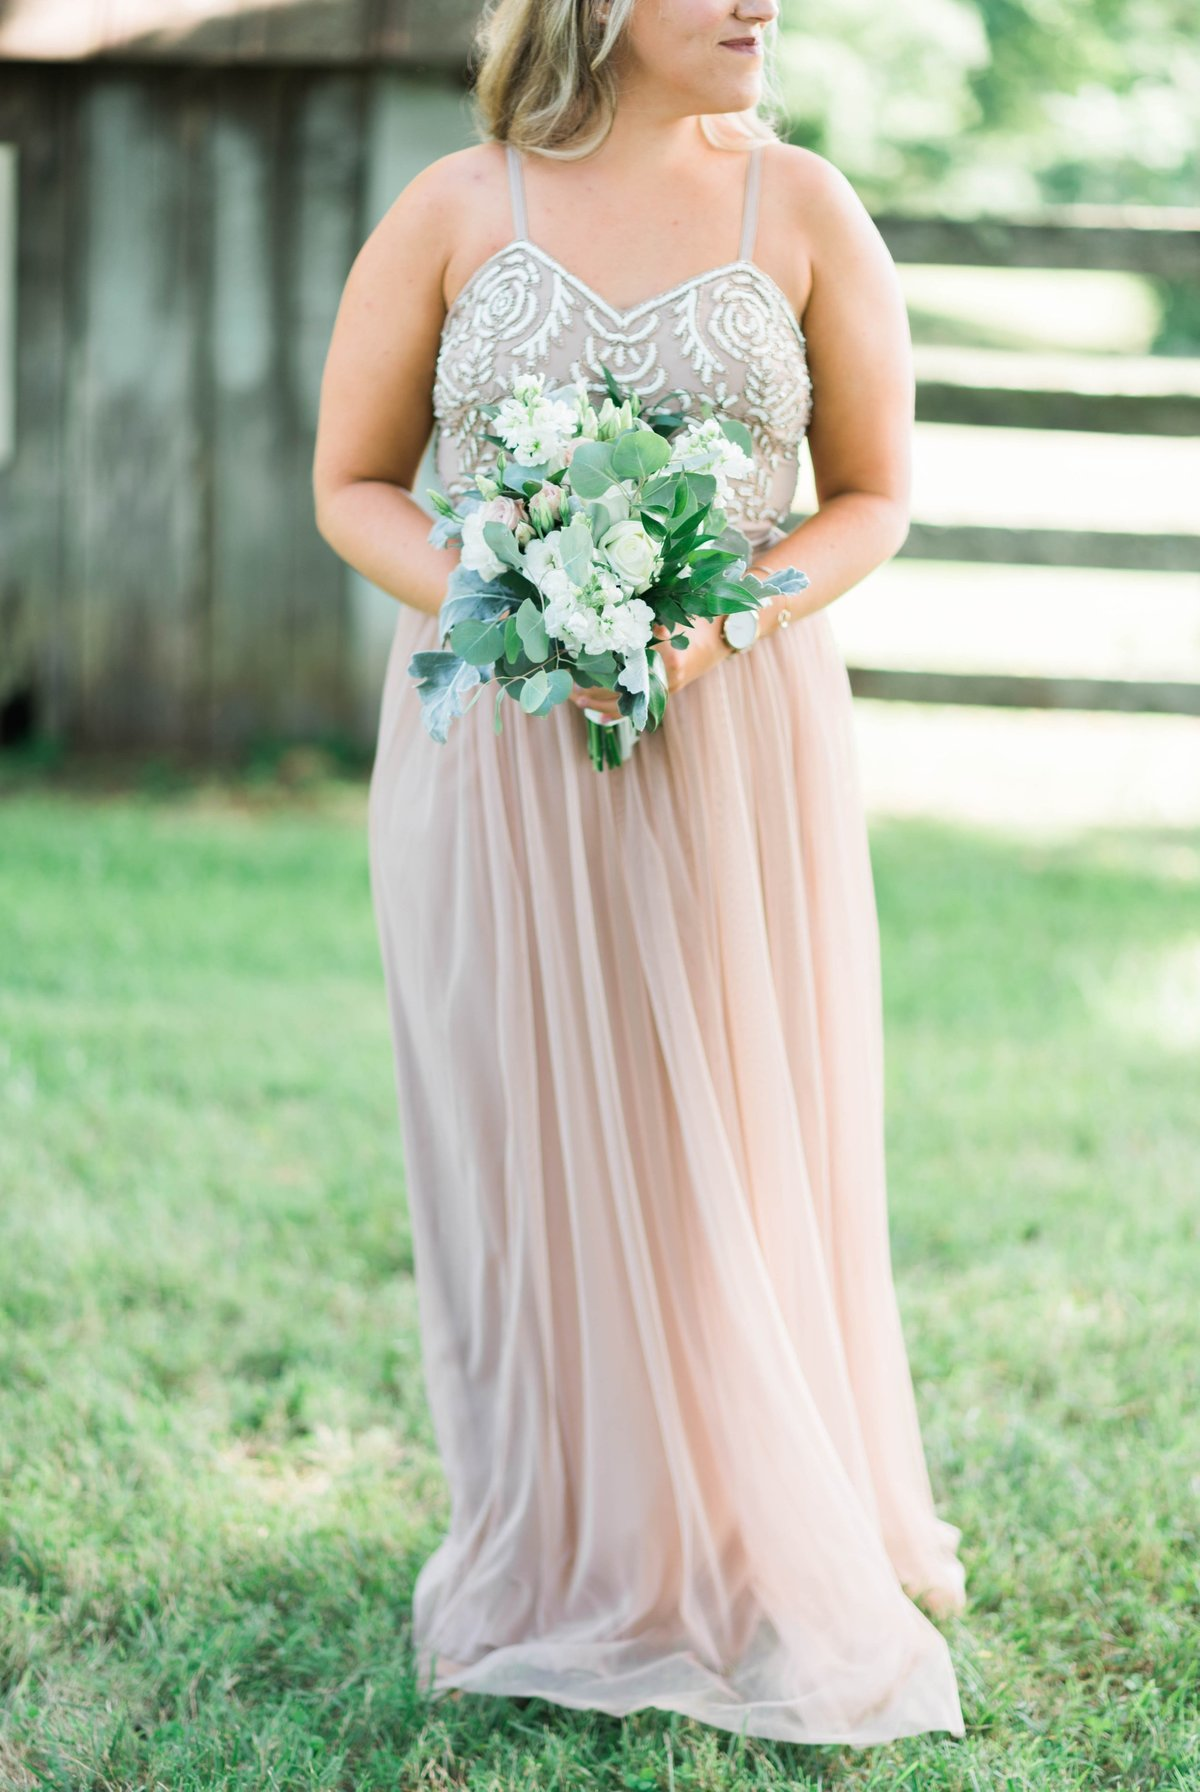 SorellaFarms_VirginiaWeddingPhotographer_BarnWedding_Lynchburgweddingphotographer_DanielleTyler+19(1)